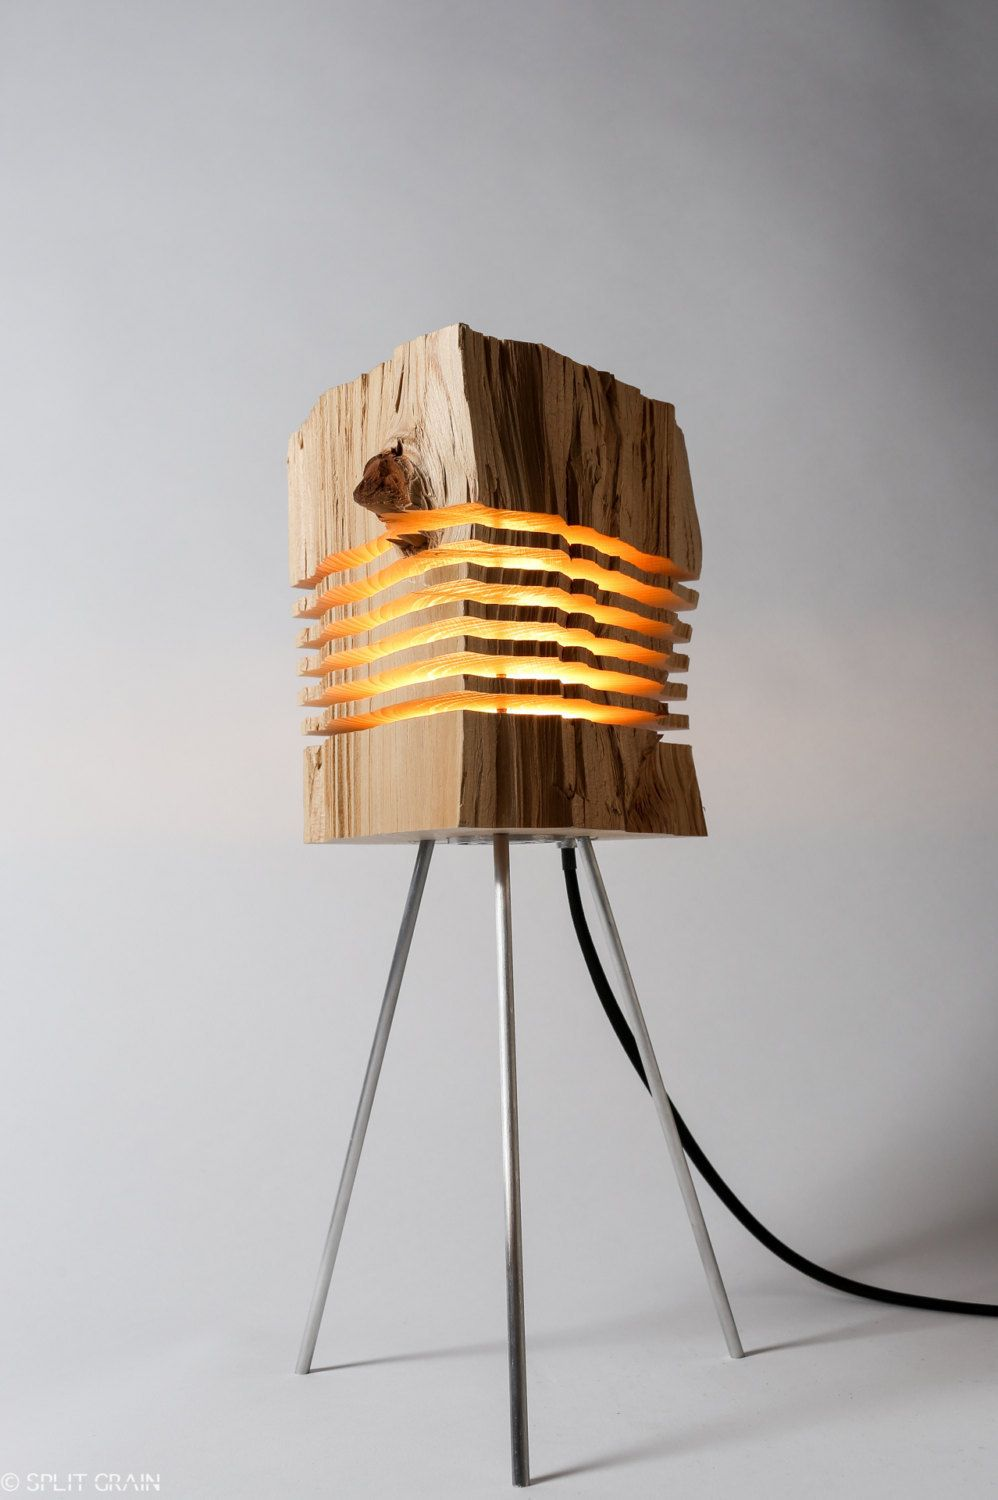 Minimalist sliced firewood lamps by split grain home bois